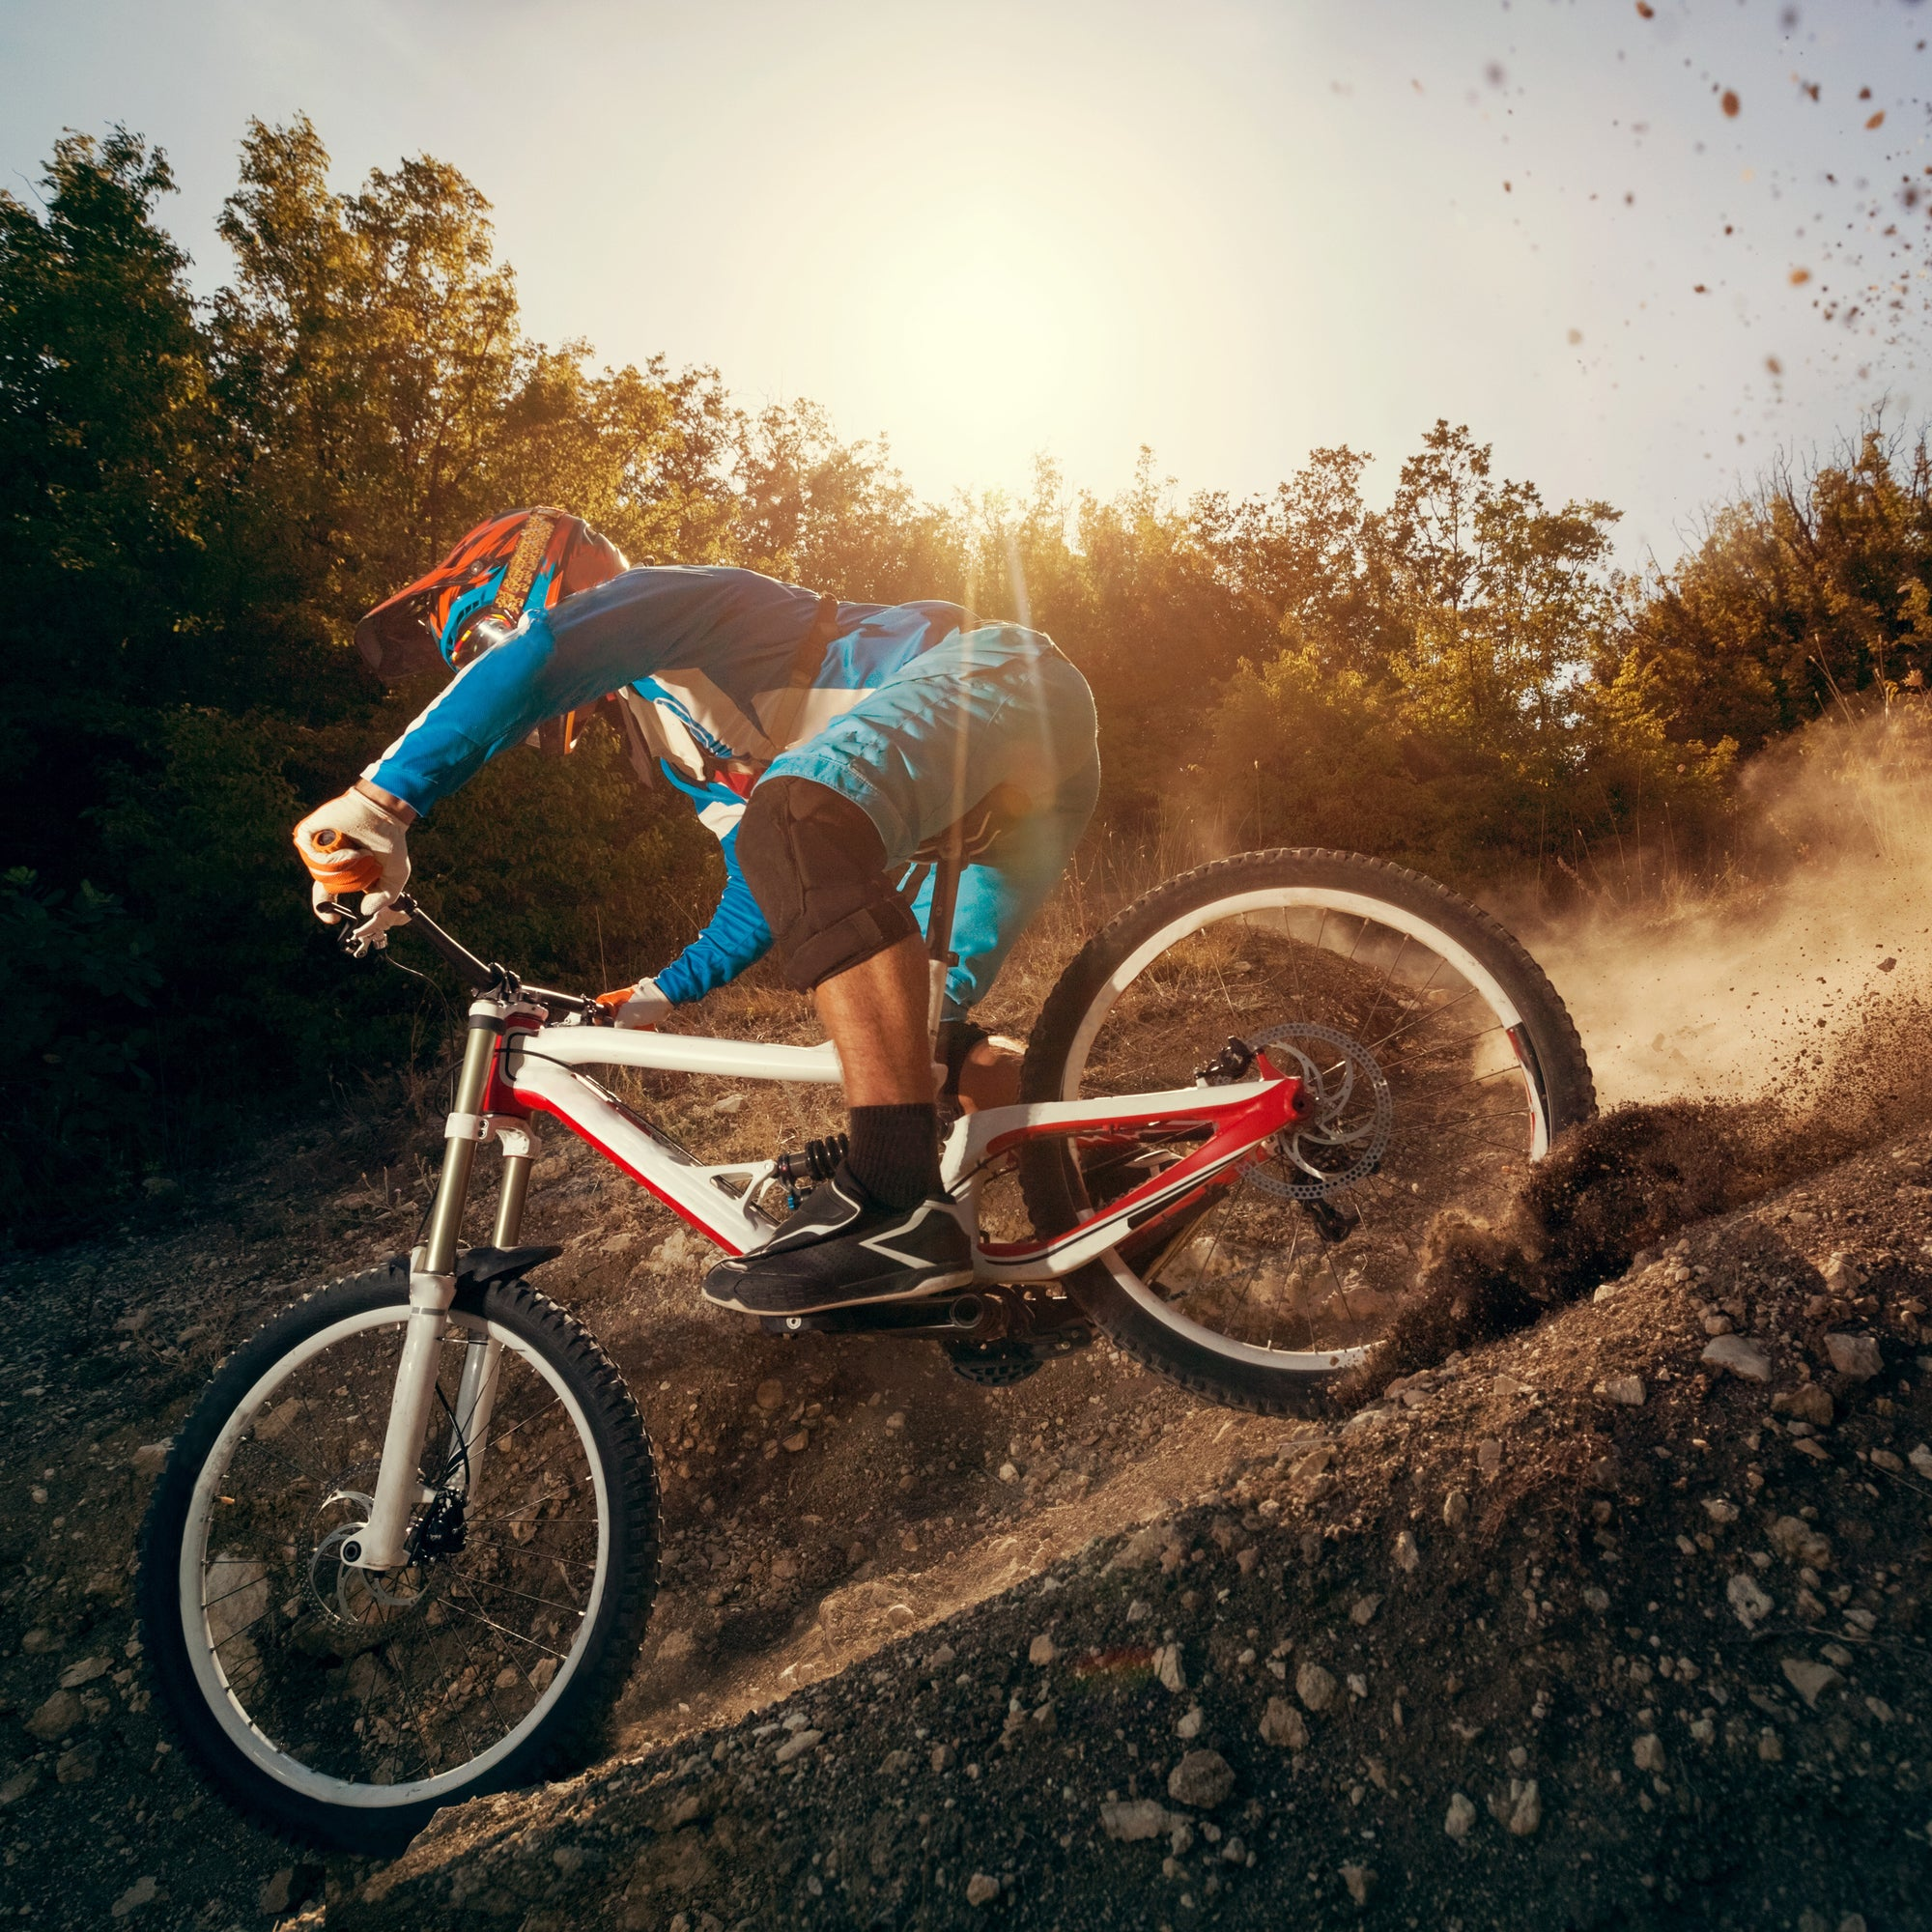 Top 5 Mountain Bike Destinations in Park City